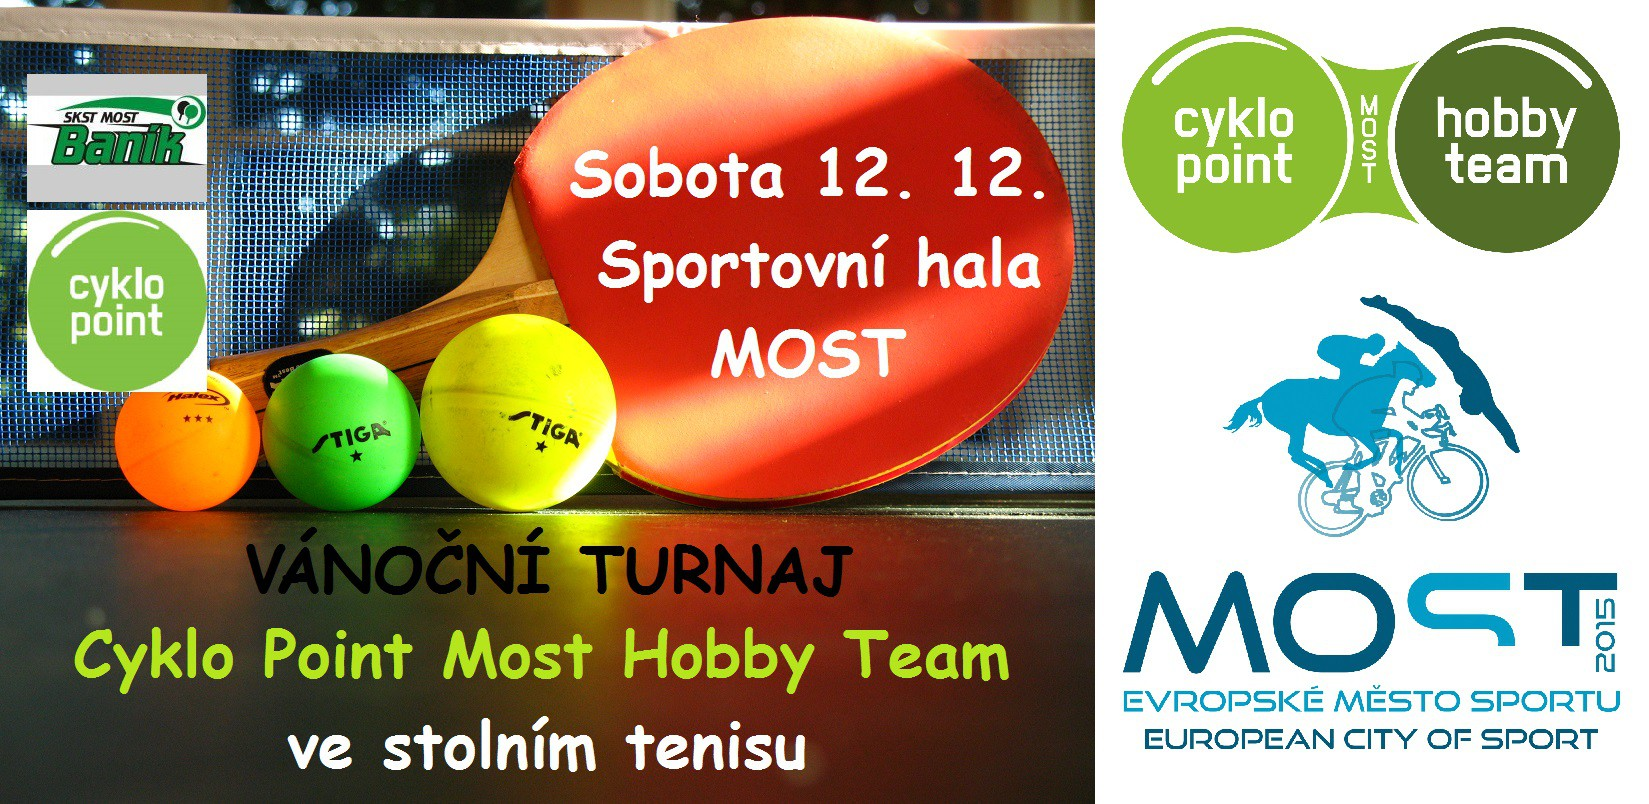 vanocni-turnaj-cyklo-point-most-hobby-team-ve-stolnim-tenisu..jpg